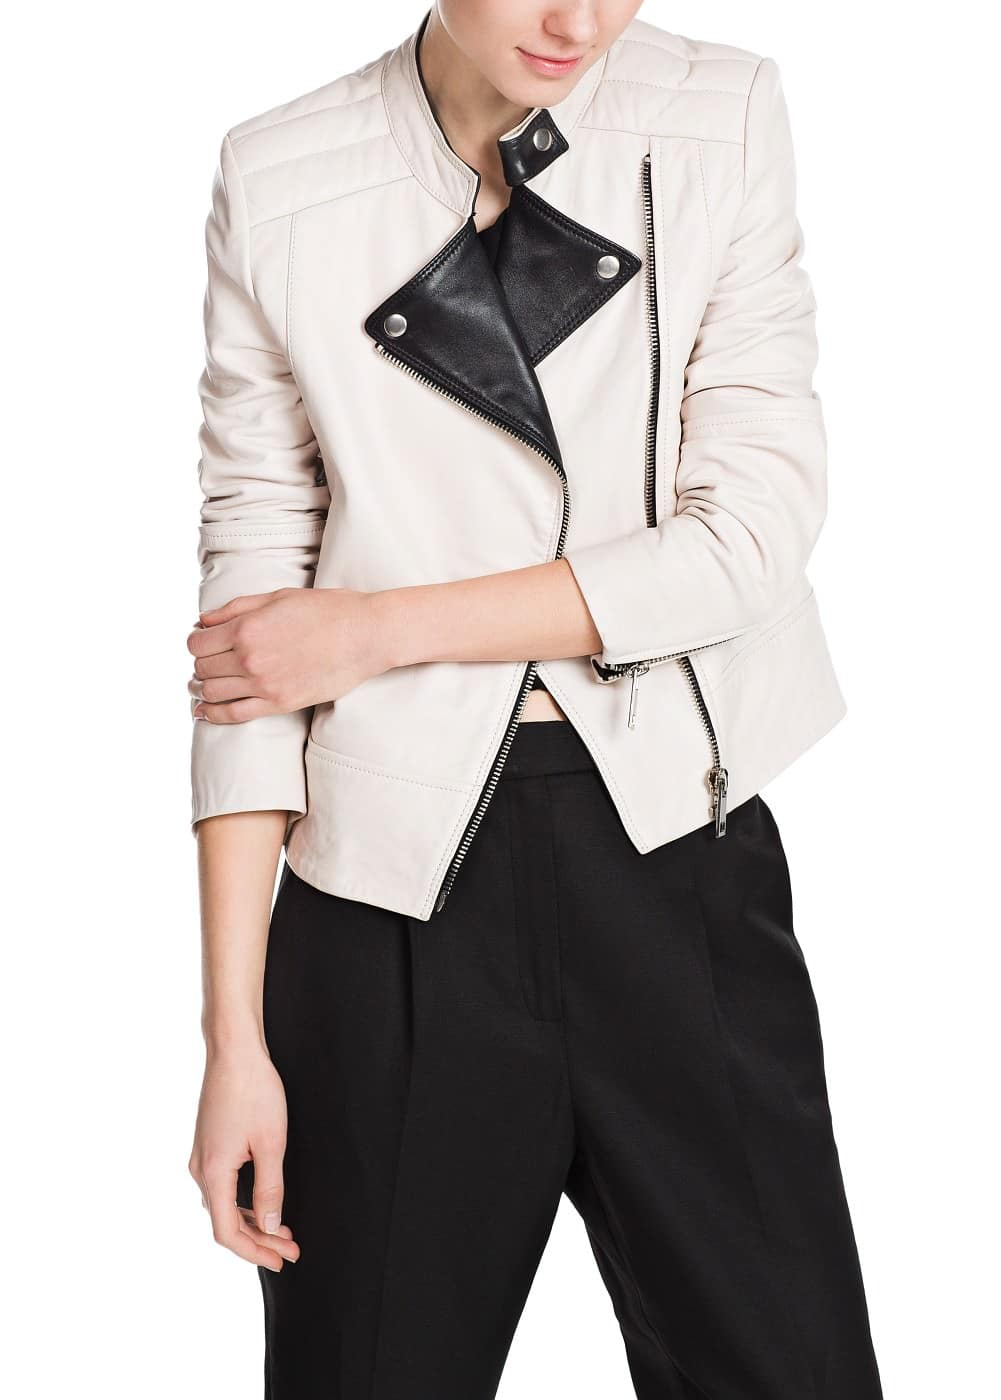 PREMIUM - Bicolor leather jacket